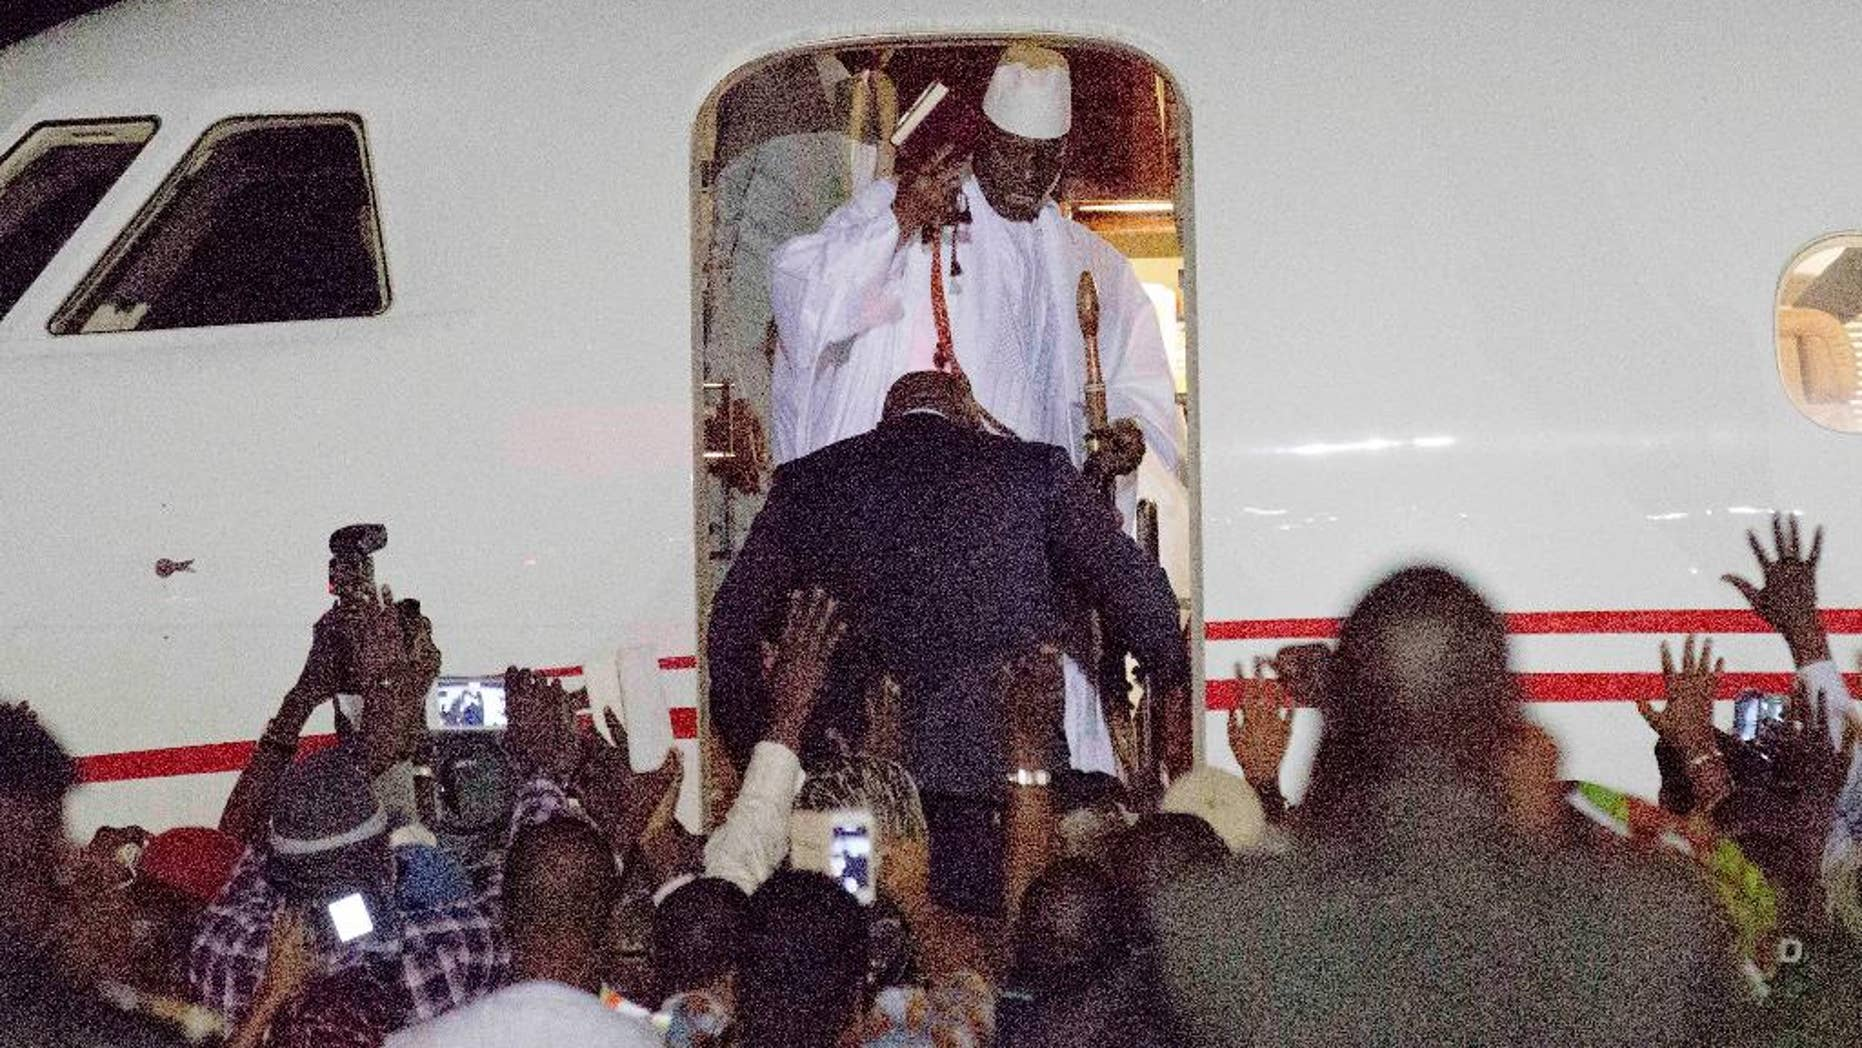 """FILE - In this file photo dated Saturday Jan. 21, 2017, Gambia's defeated leader Yahya Jammeh, top wearing white, waves to supporters as he goes into exile from Gambia's capital Banjul airport. Jammeh fiercely denounced homosexuality and warned gay people to leave the country with threats to """"cut of the head"""" of any who remained, so Jammeh's departure """"is a great relief for the population, and especially the LGBT population who were often martyred under his rule,"""" said Lambert Lamba, a leading gay rights activist in Cameroon. (AP Photo/Jerome Delay, FILE)"""